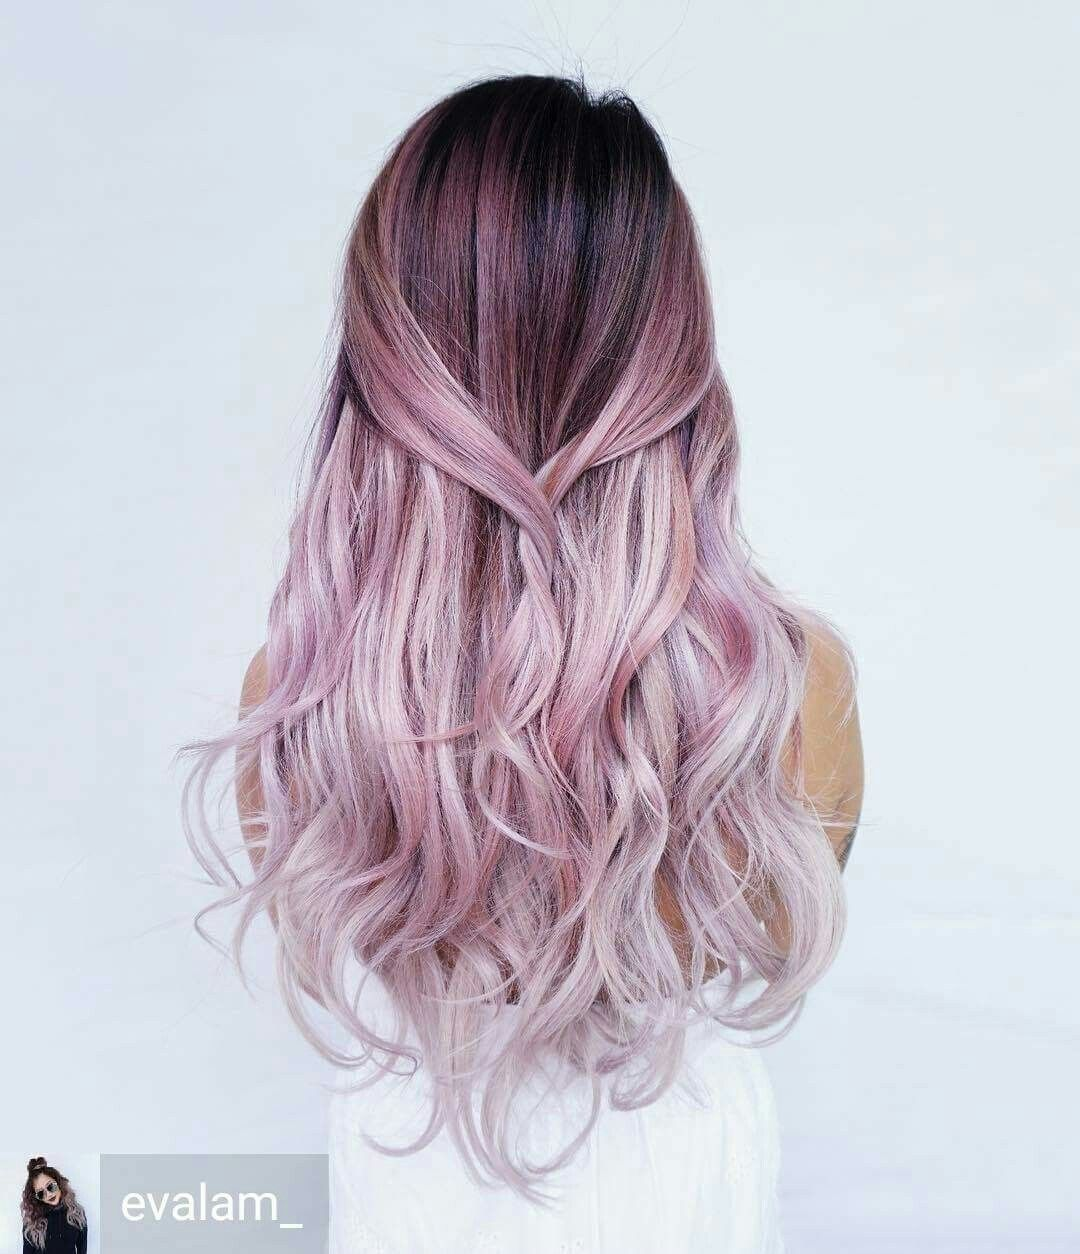 Awesome pastel violet rose ombre hair dyes ideas pinterest